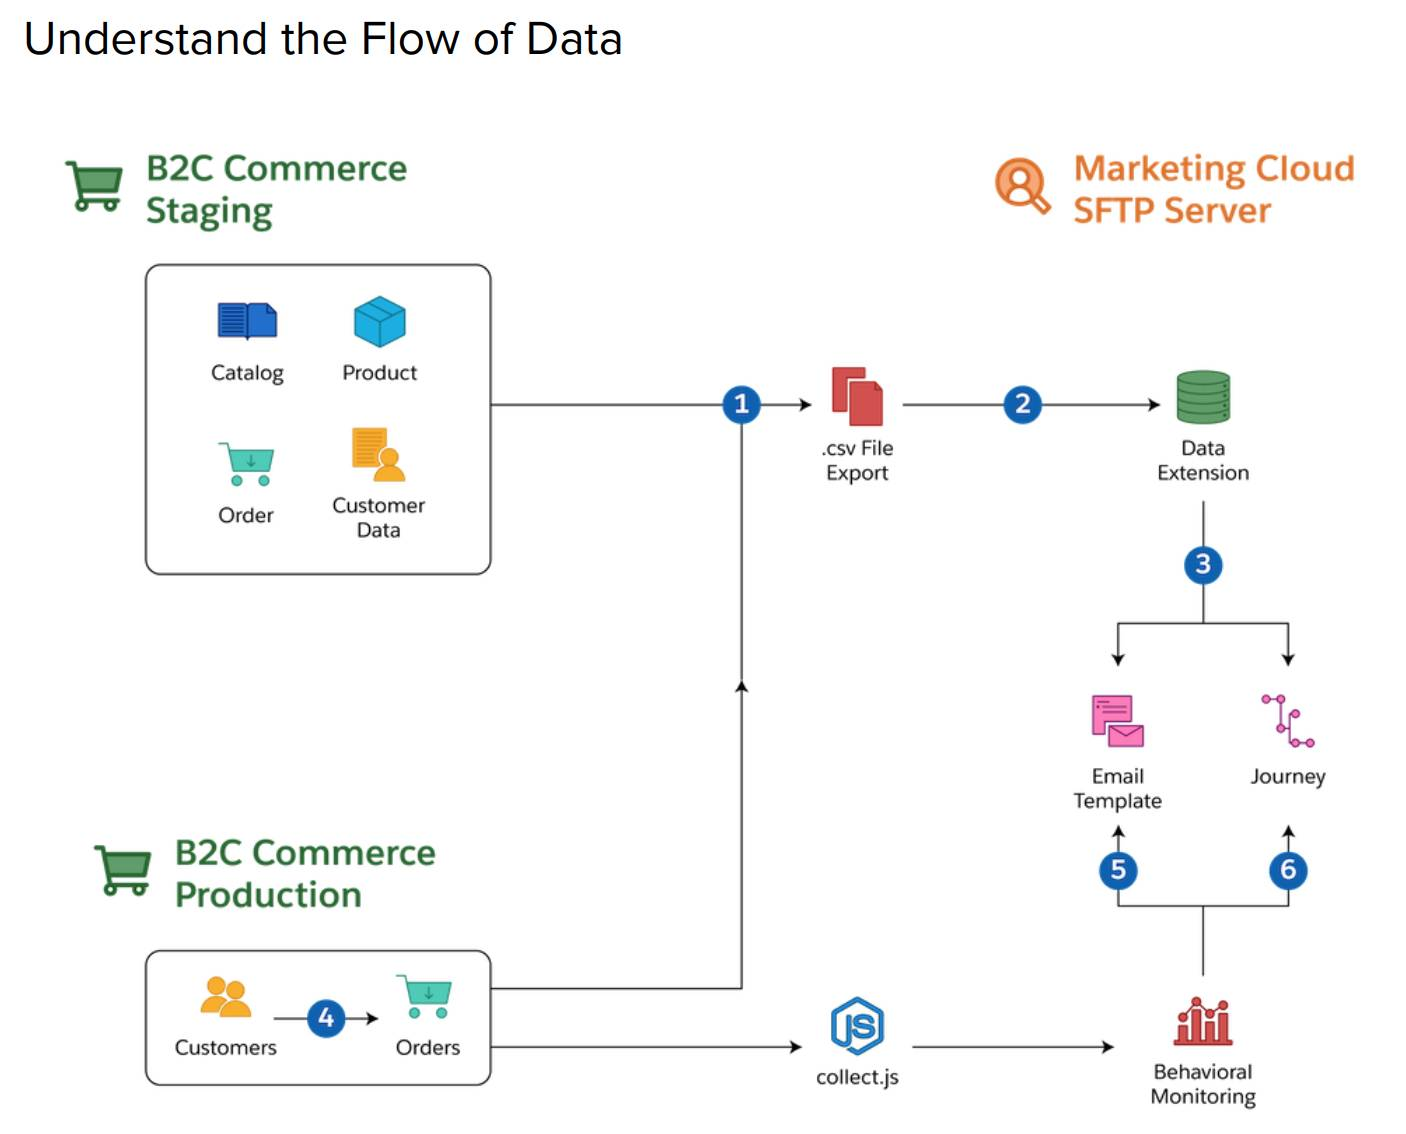 Diagram included within the abandon cart solution kit to understand the flow of data.